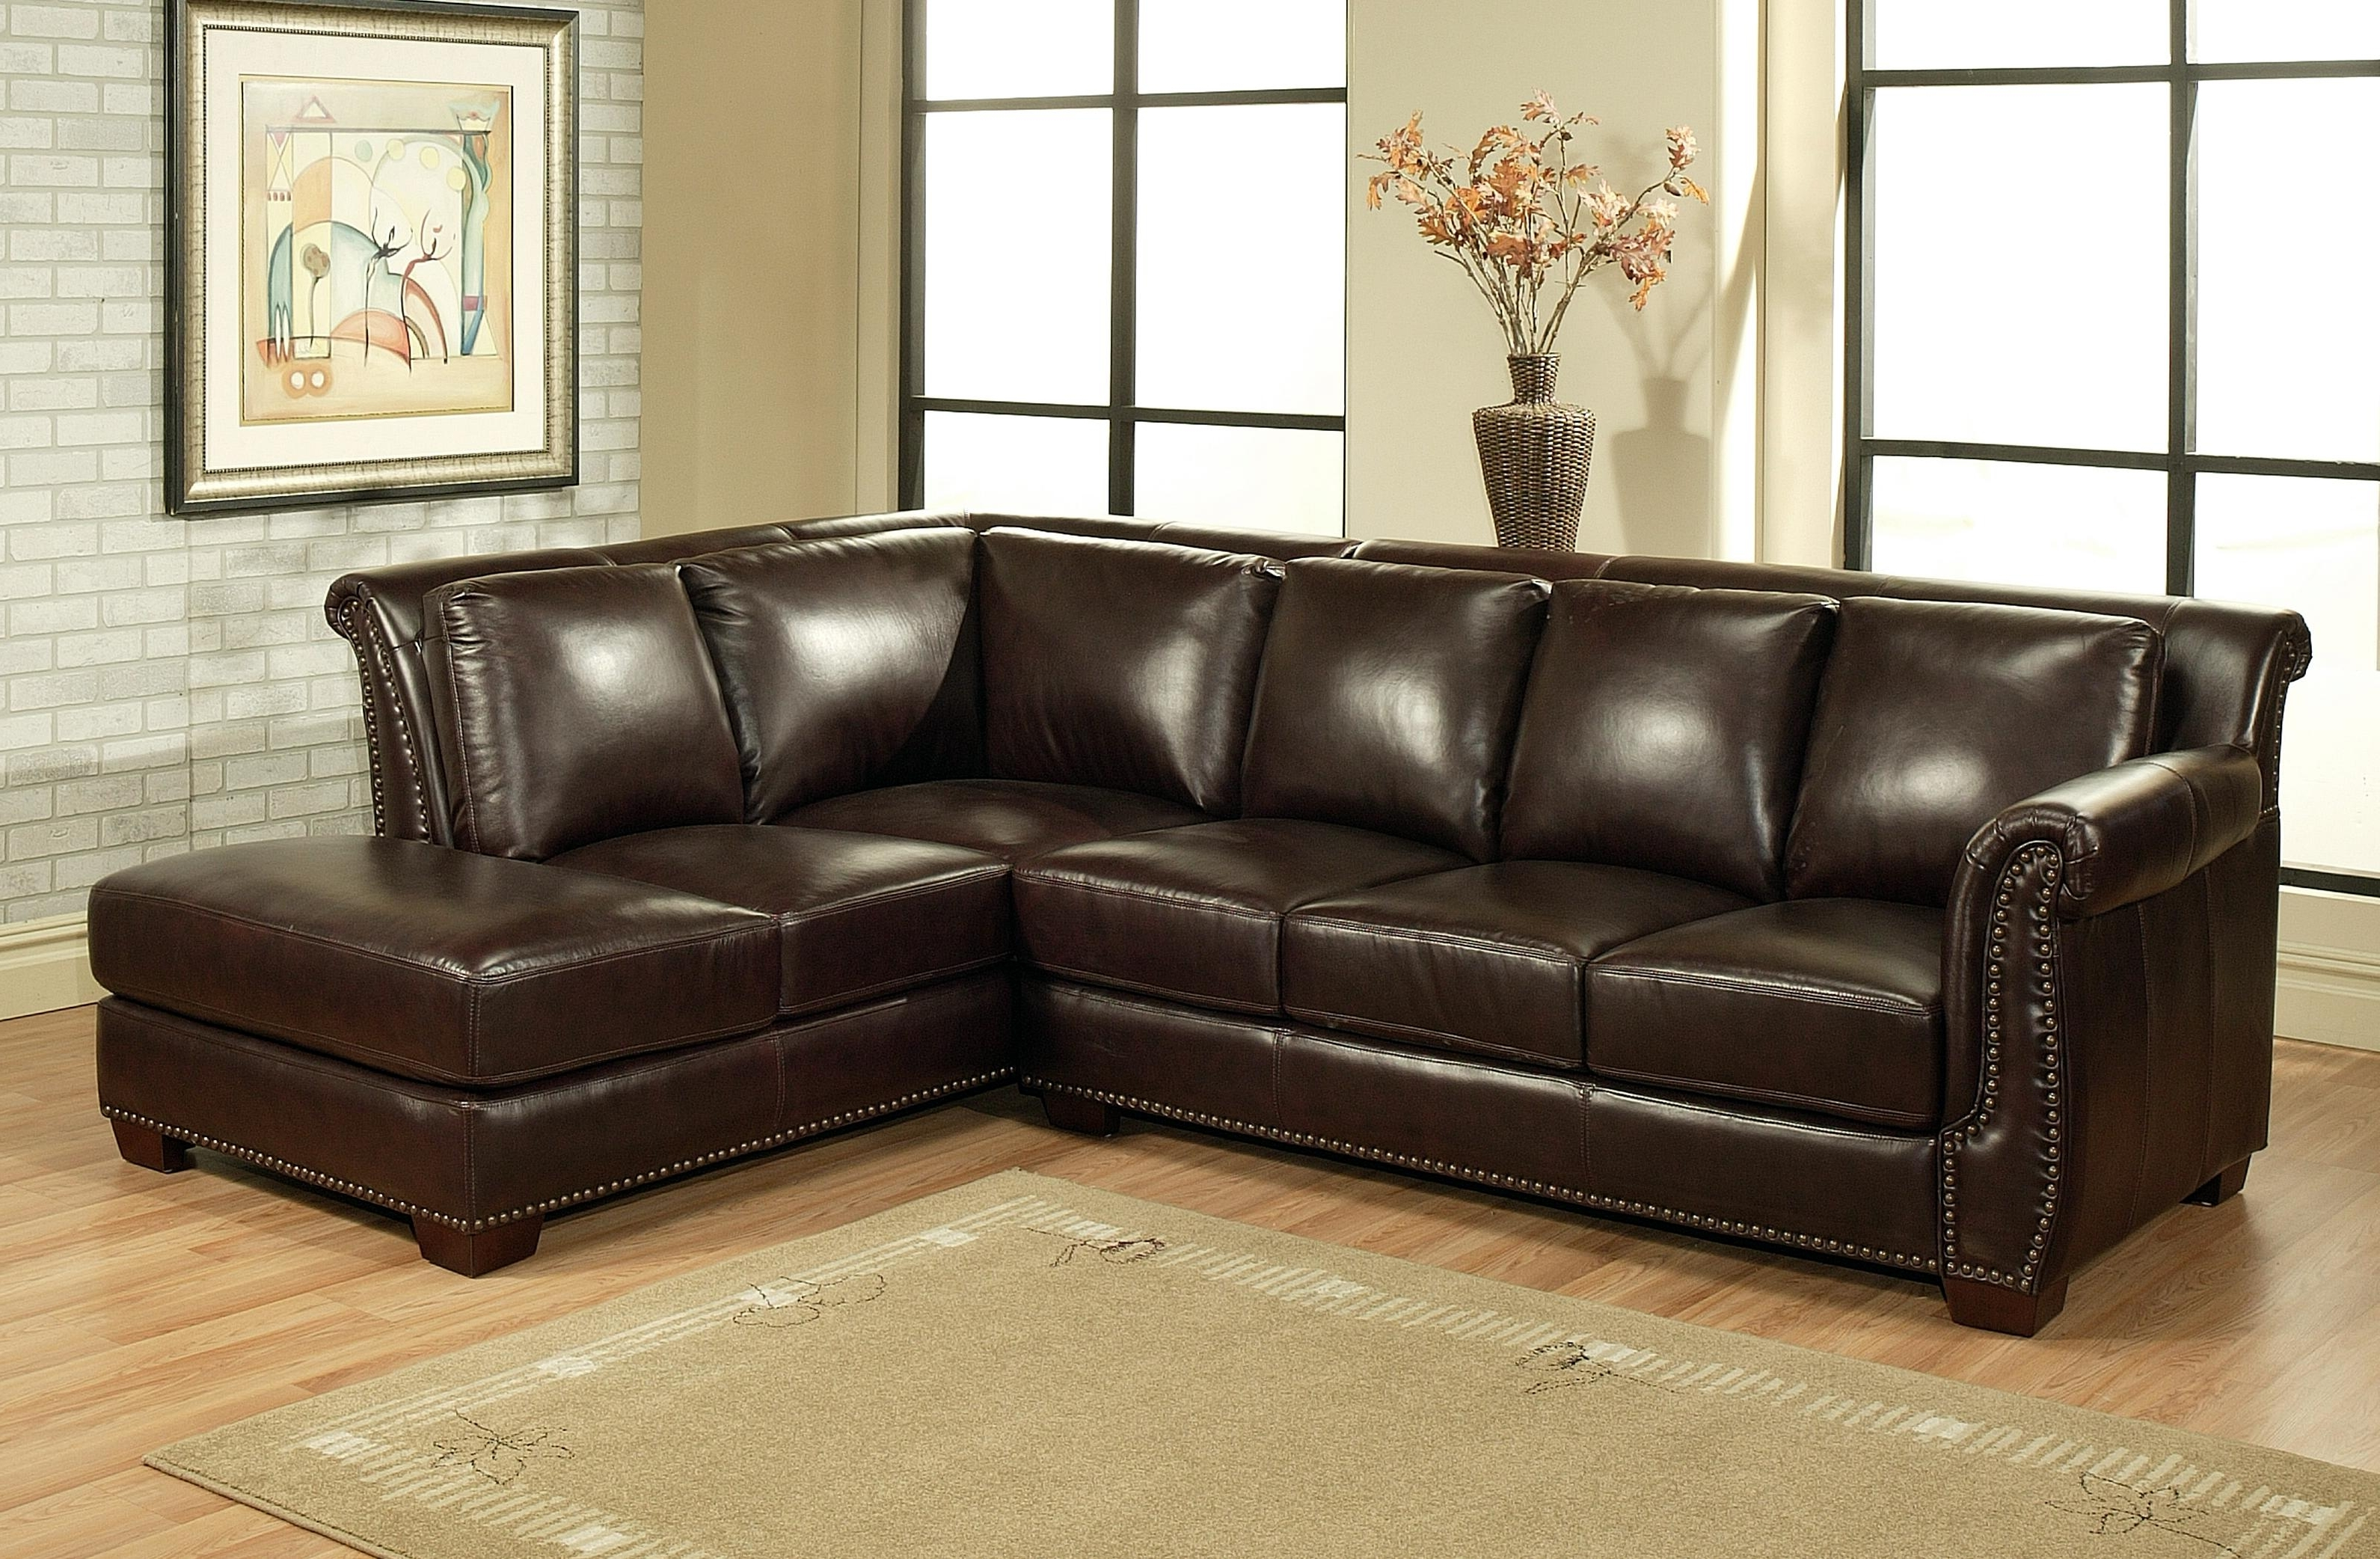 Ikea Ektorp Sectional Sectional Couch Ikea Sectionals Sofas White with Most Up-to-Date Brown Leather Sectionals With Chaise